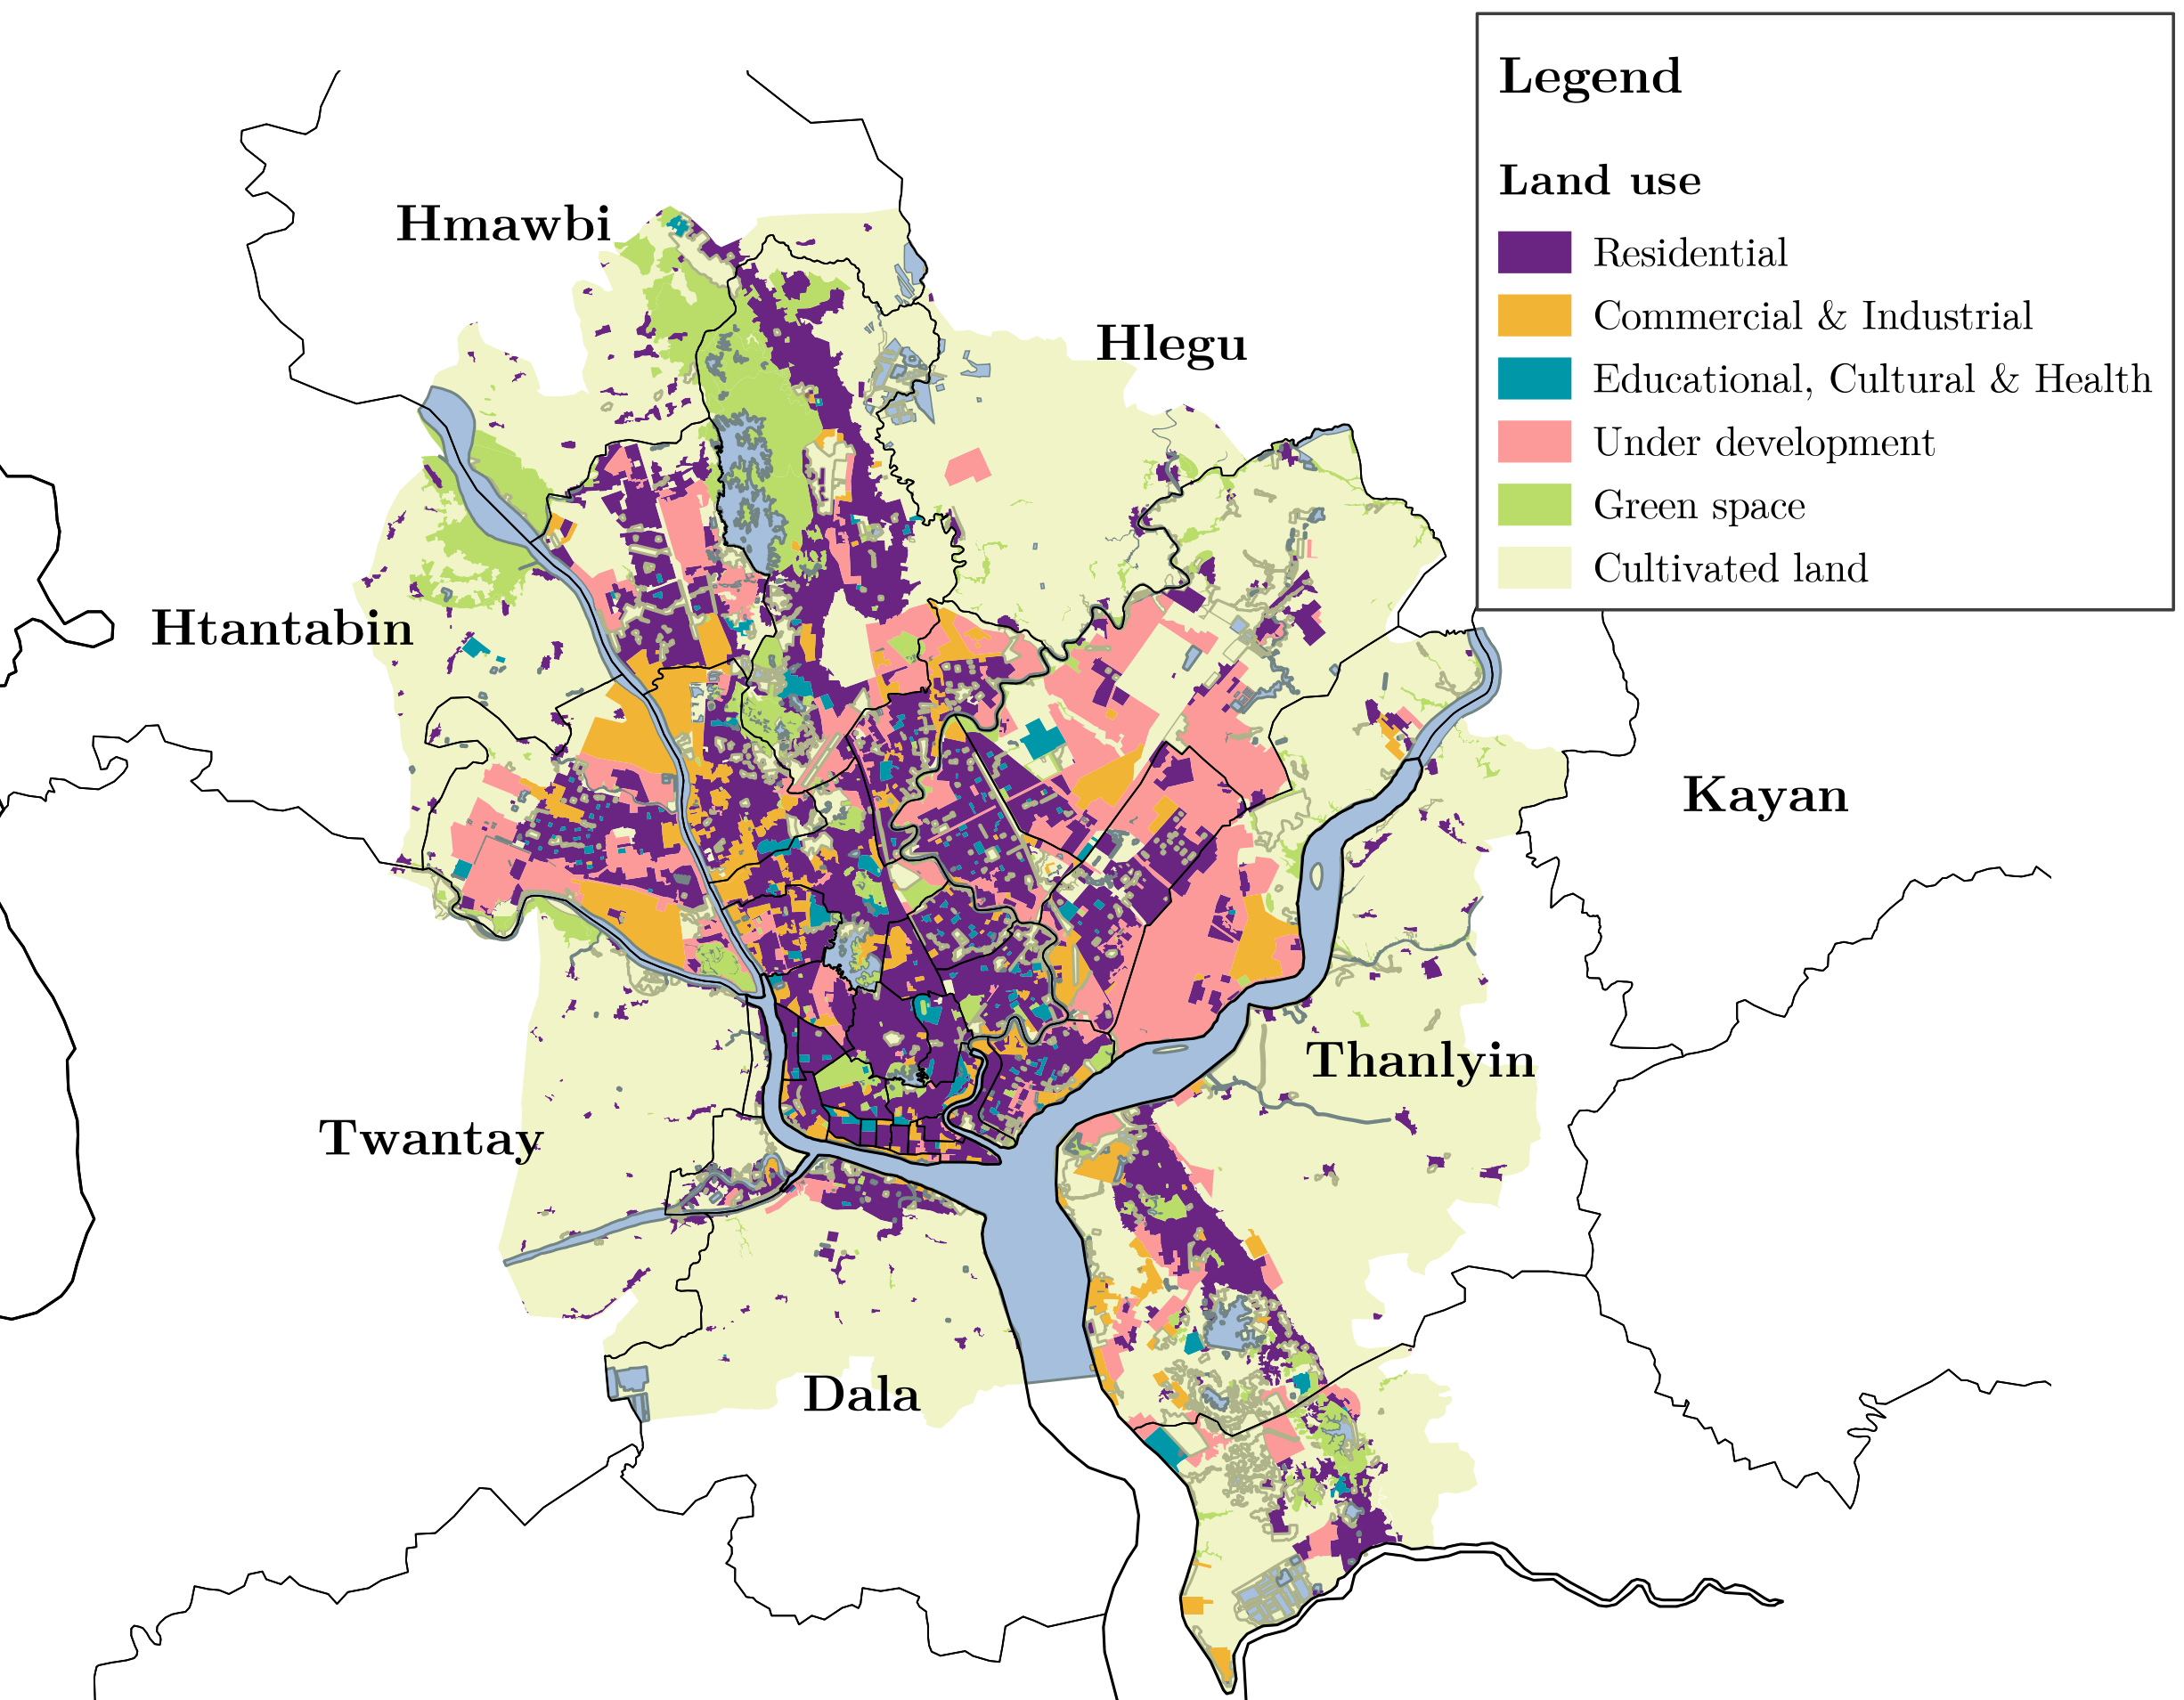 Land use in Yangon, Myanmar